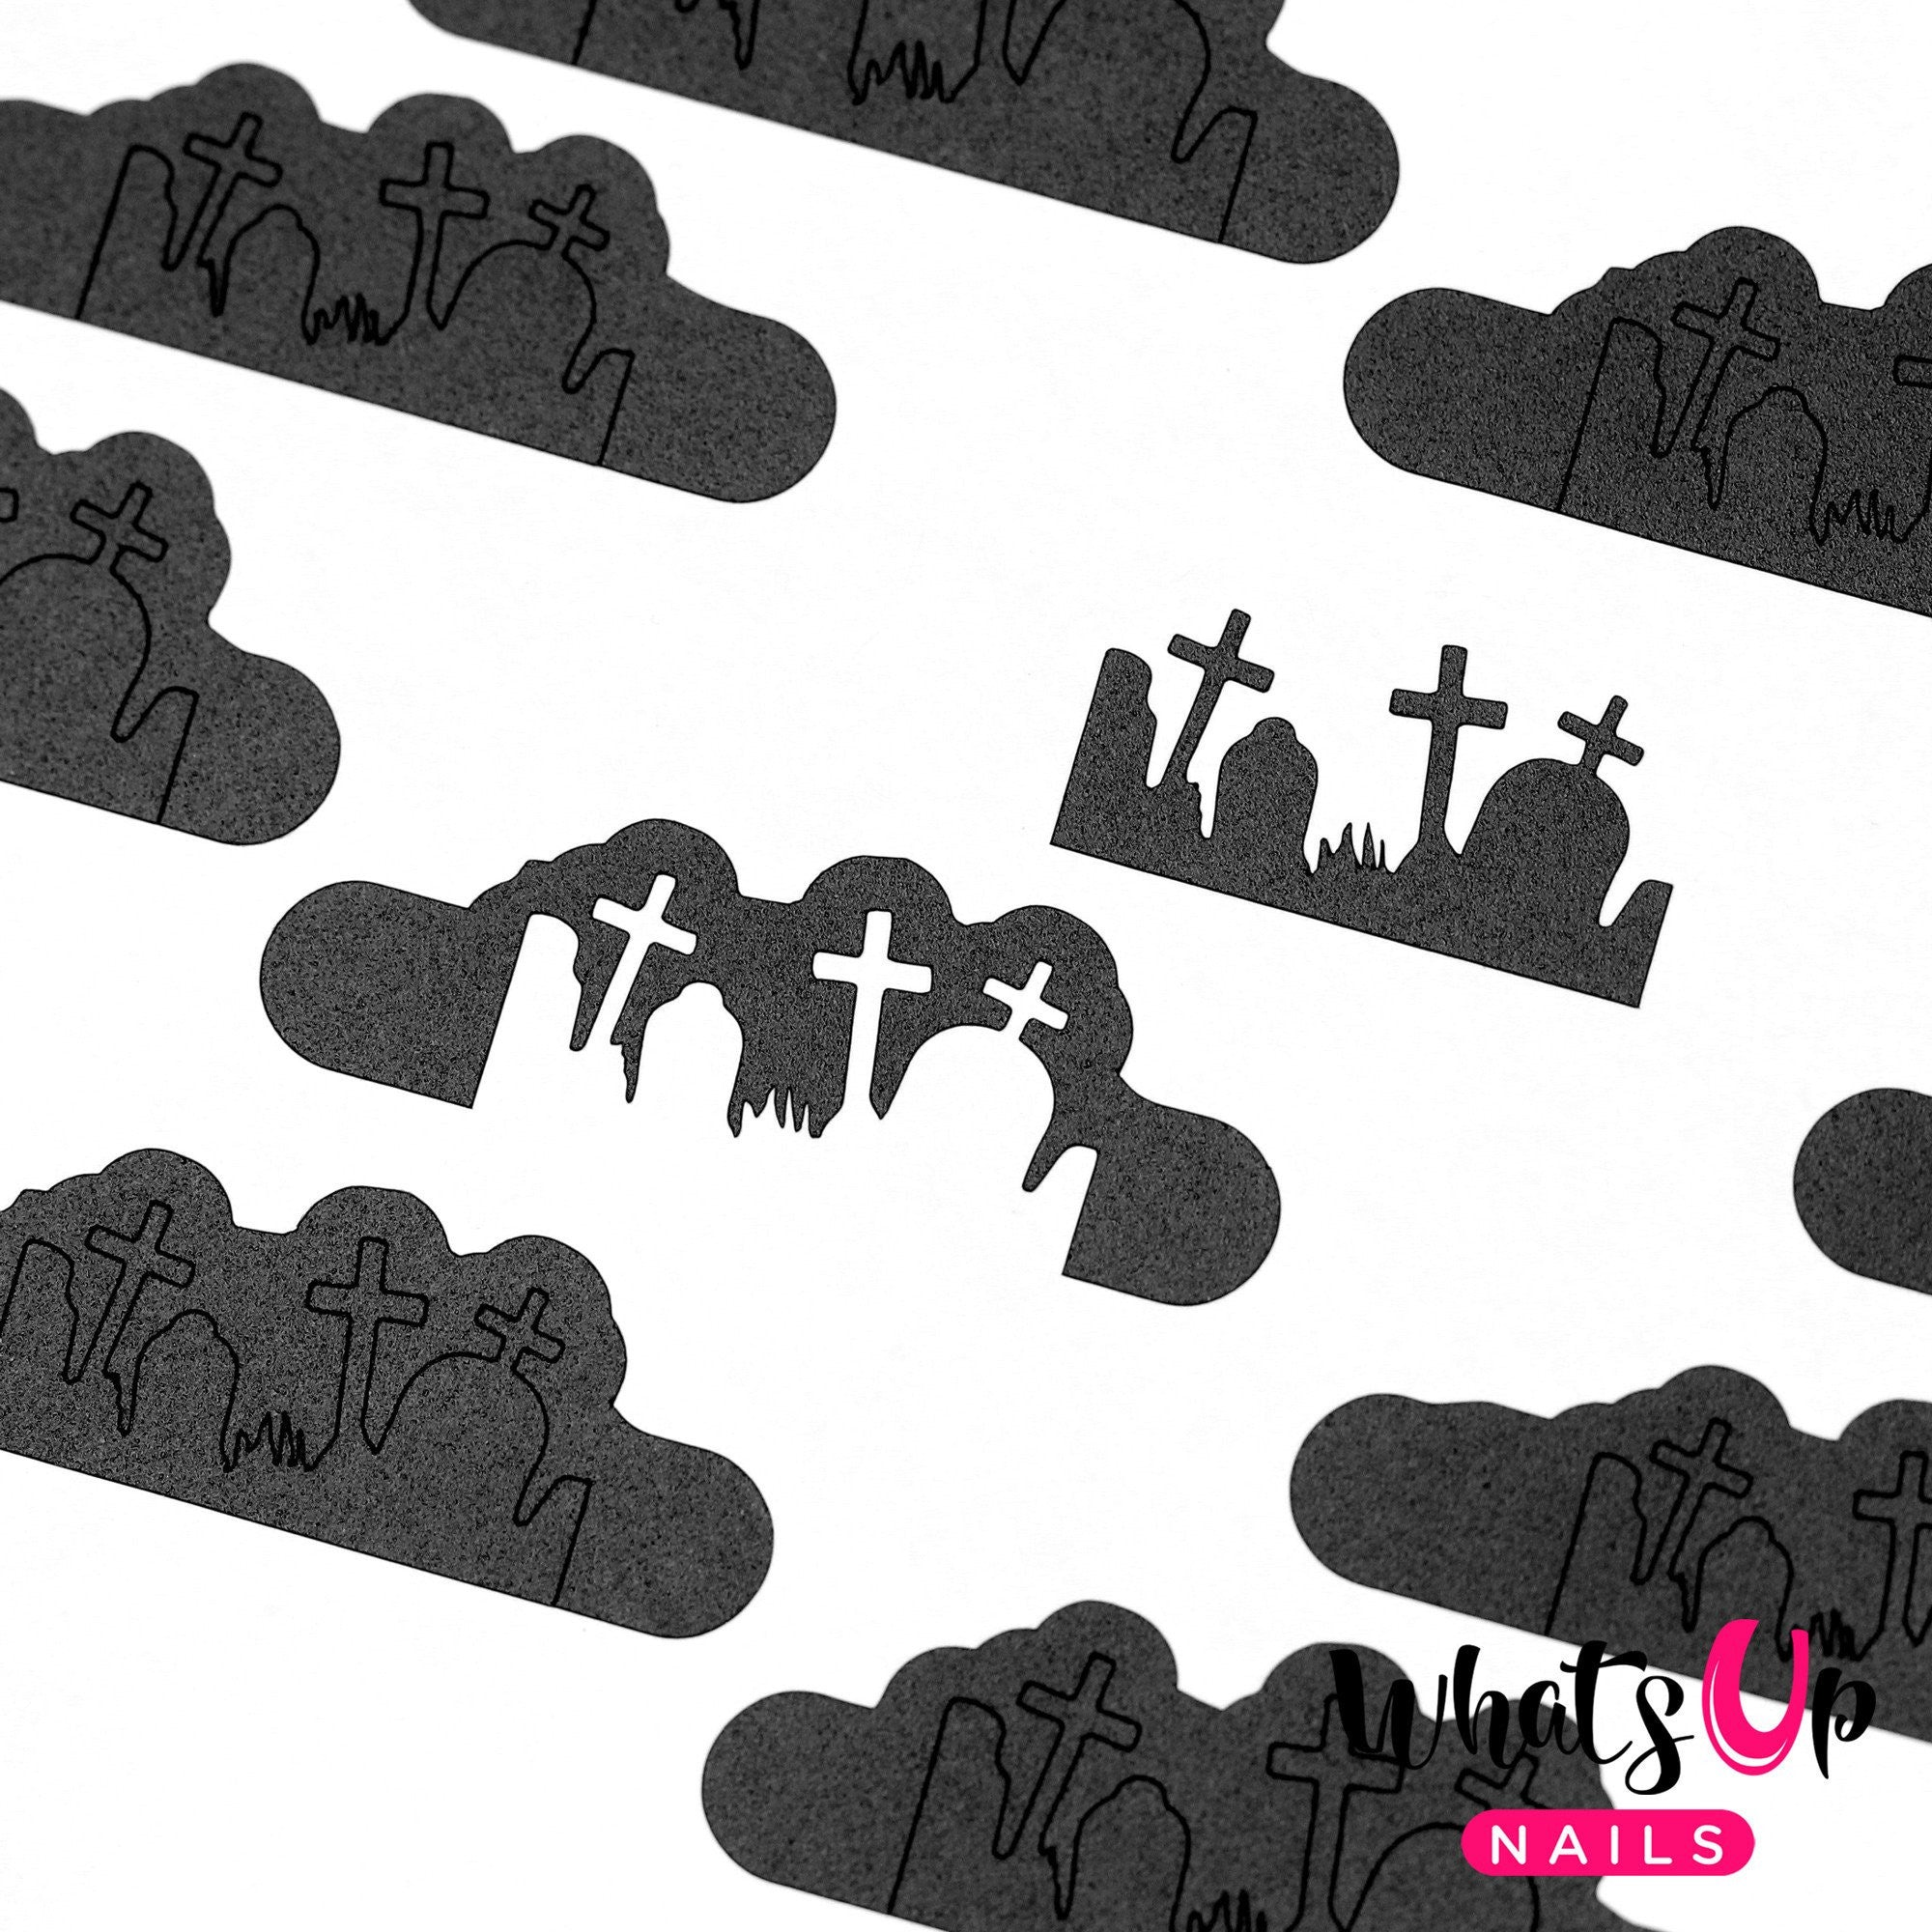 Daily Charme Nail Art Supply Nail Vinyls Sticker Stencil Whats Up Nails / Graveyard Stencils